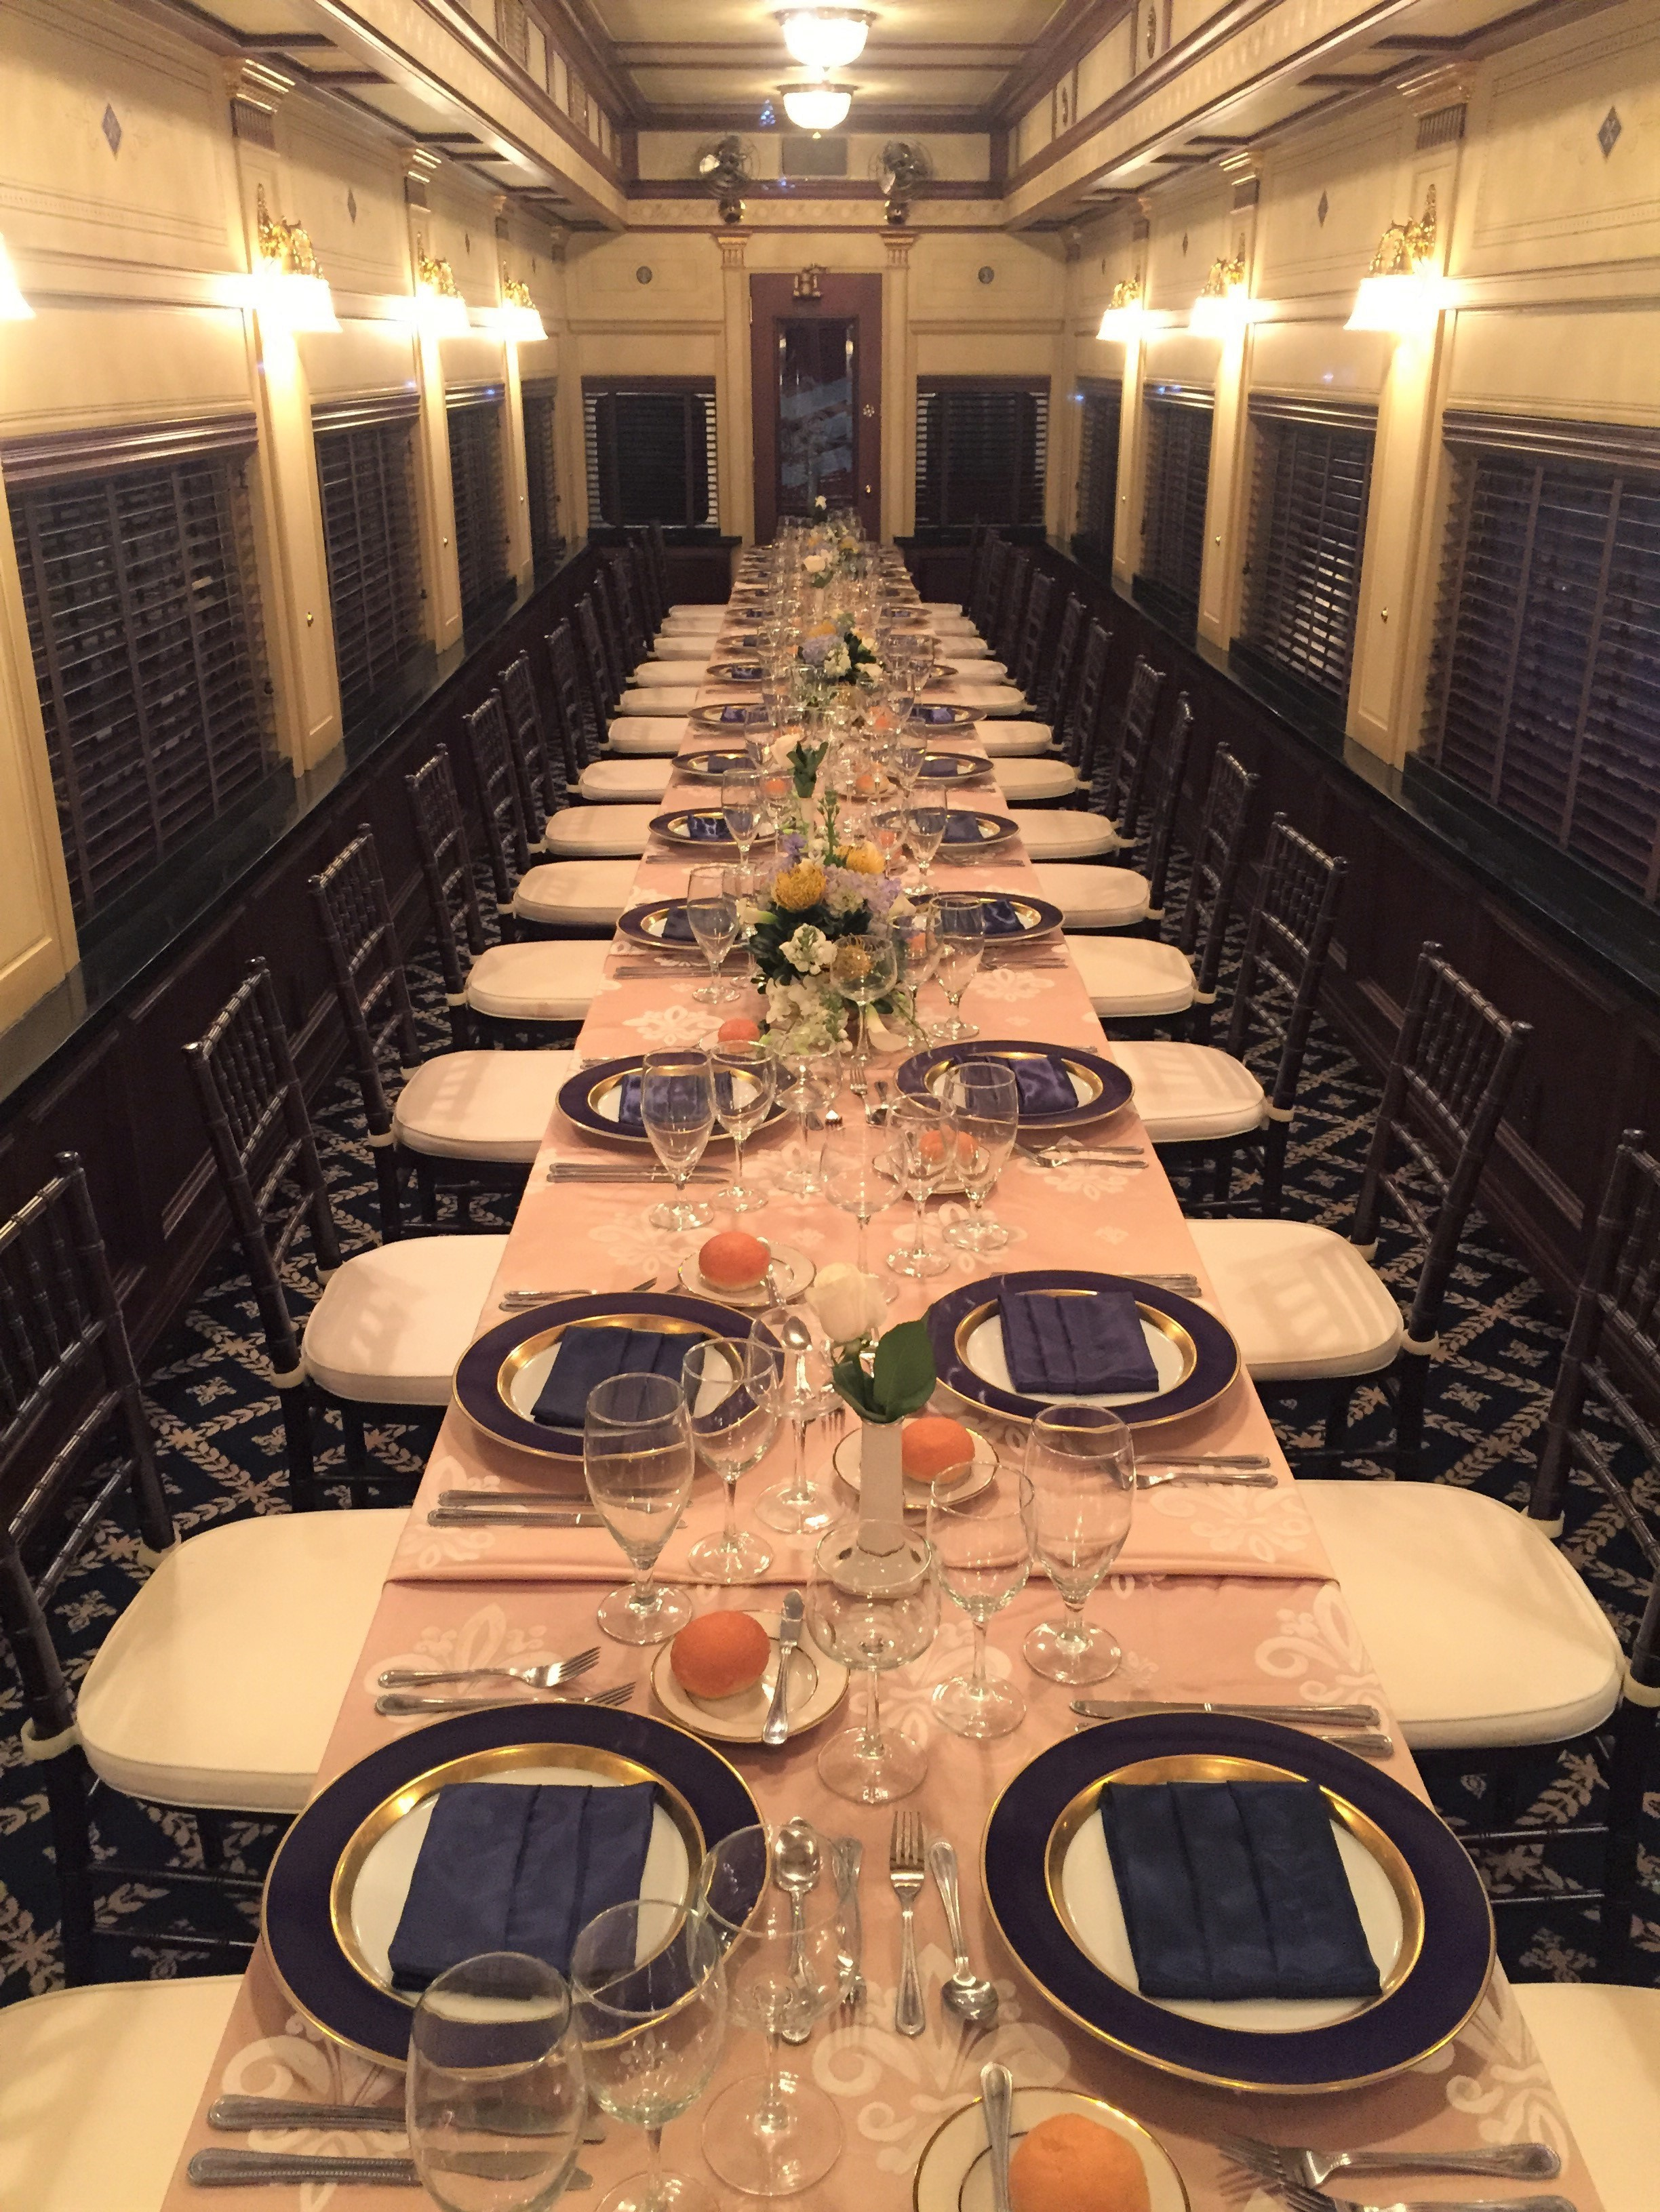 Dining table in railcar